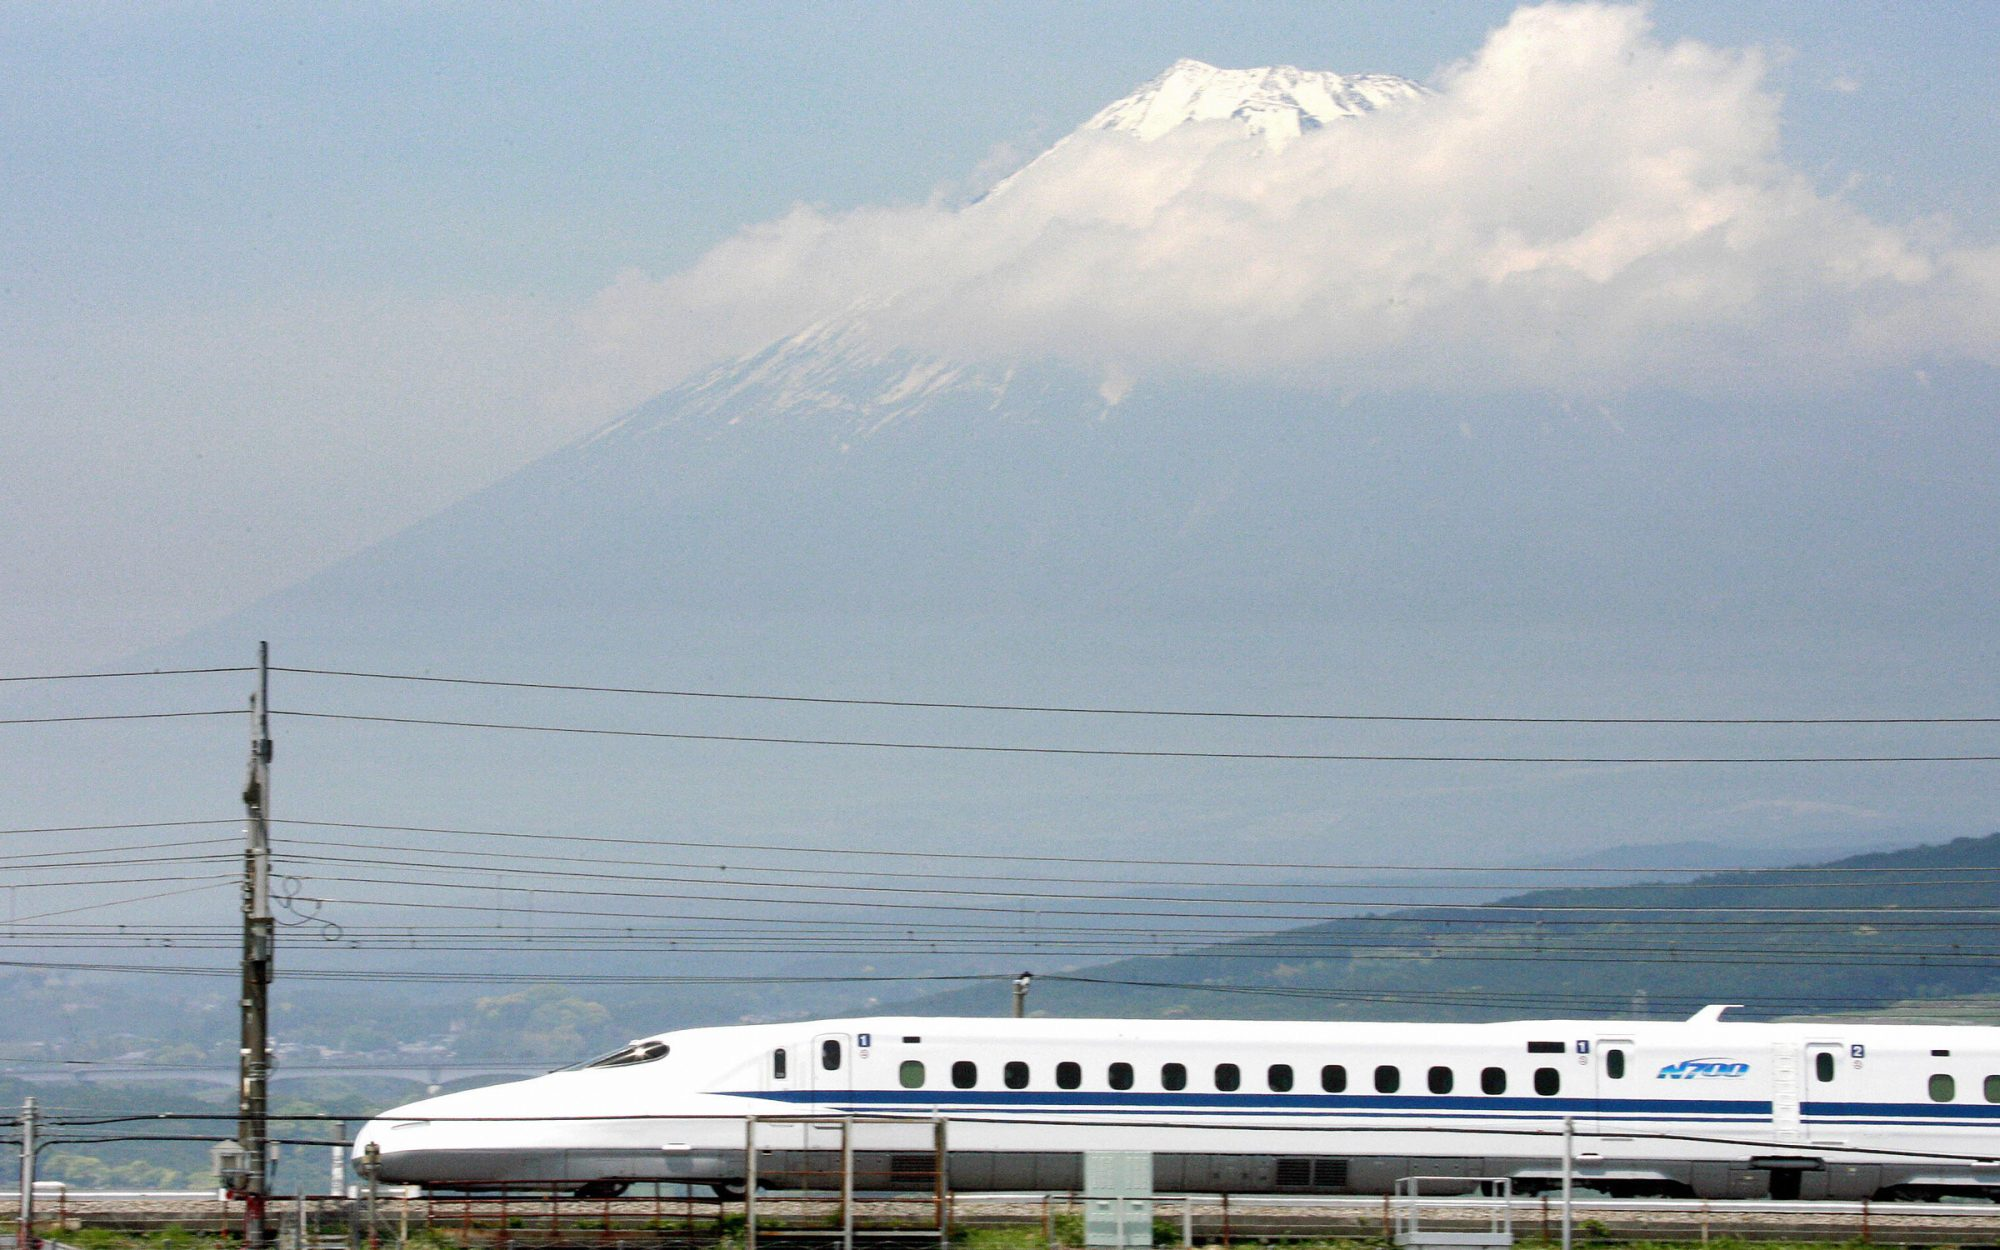 Japanese Bullet Train Made Emergency Stop Because of Snake Onboard